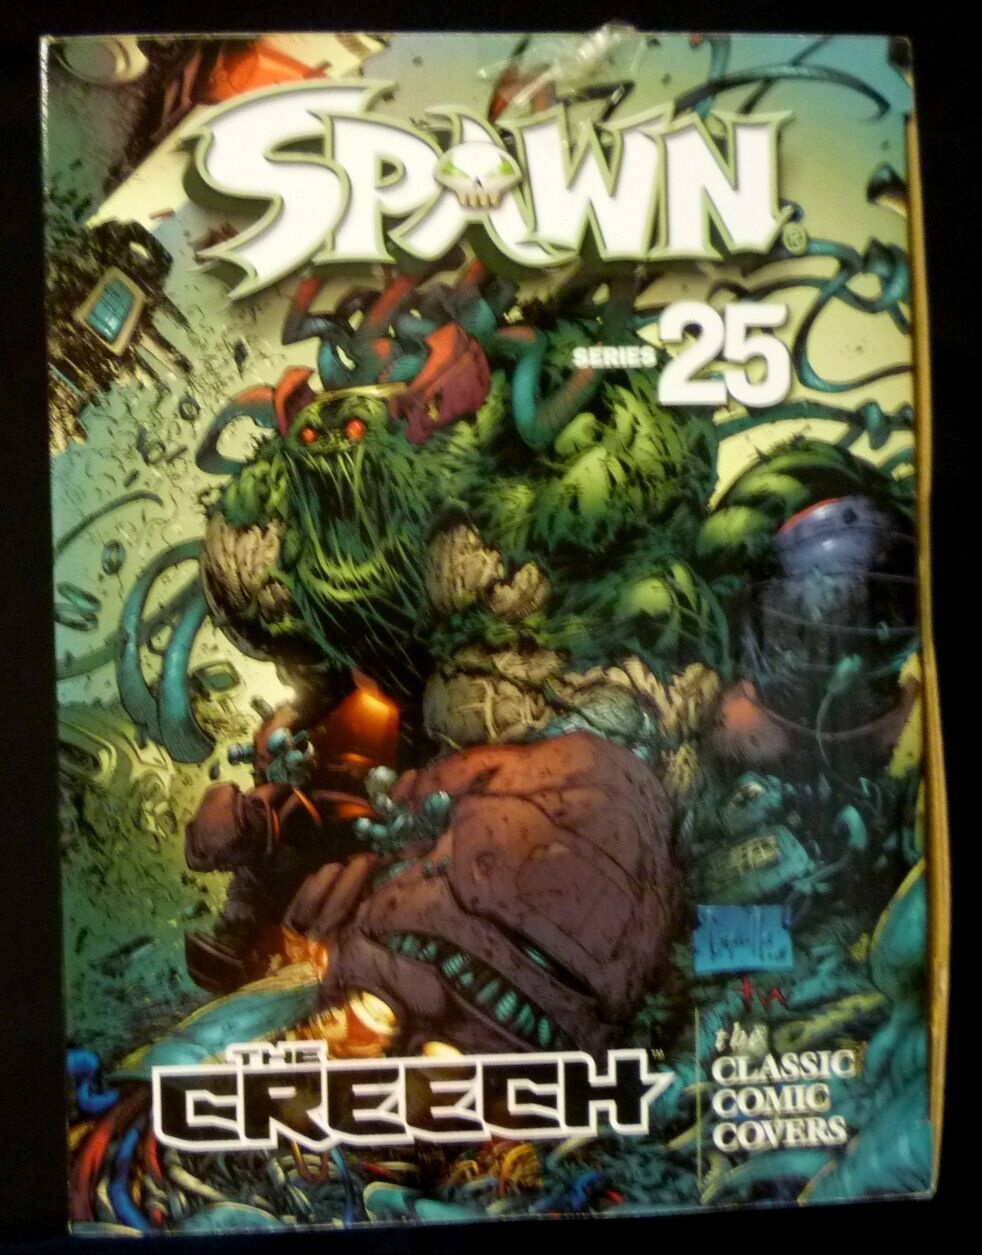 Spawn Creech Classic Comic Covers Series 25 2004 Deluxe Box Set McFarlane CASE F